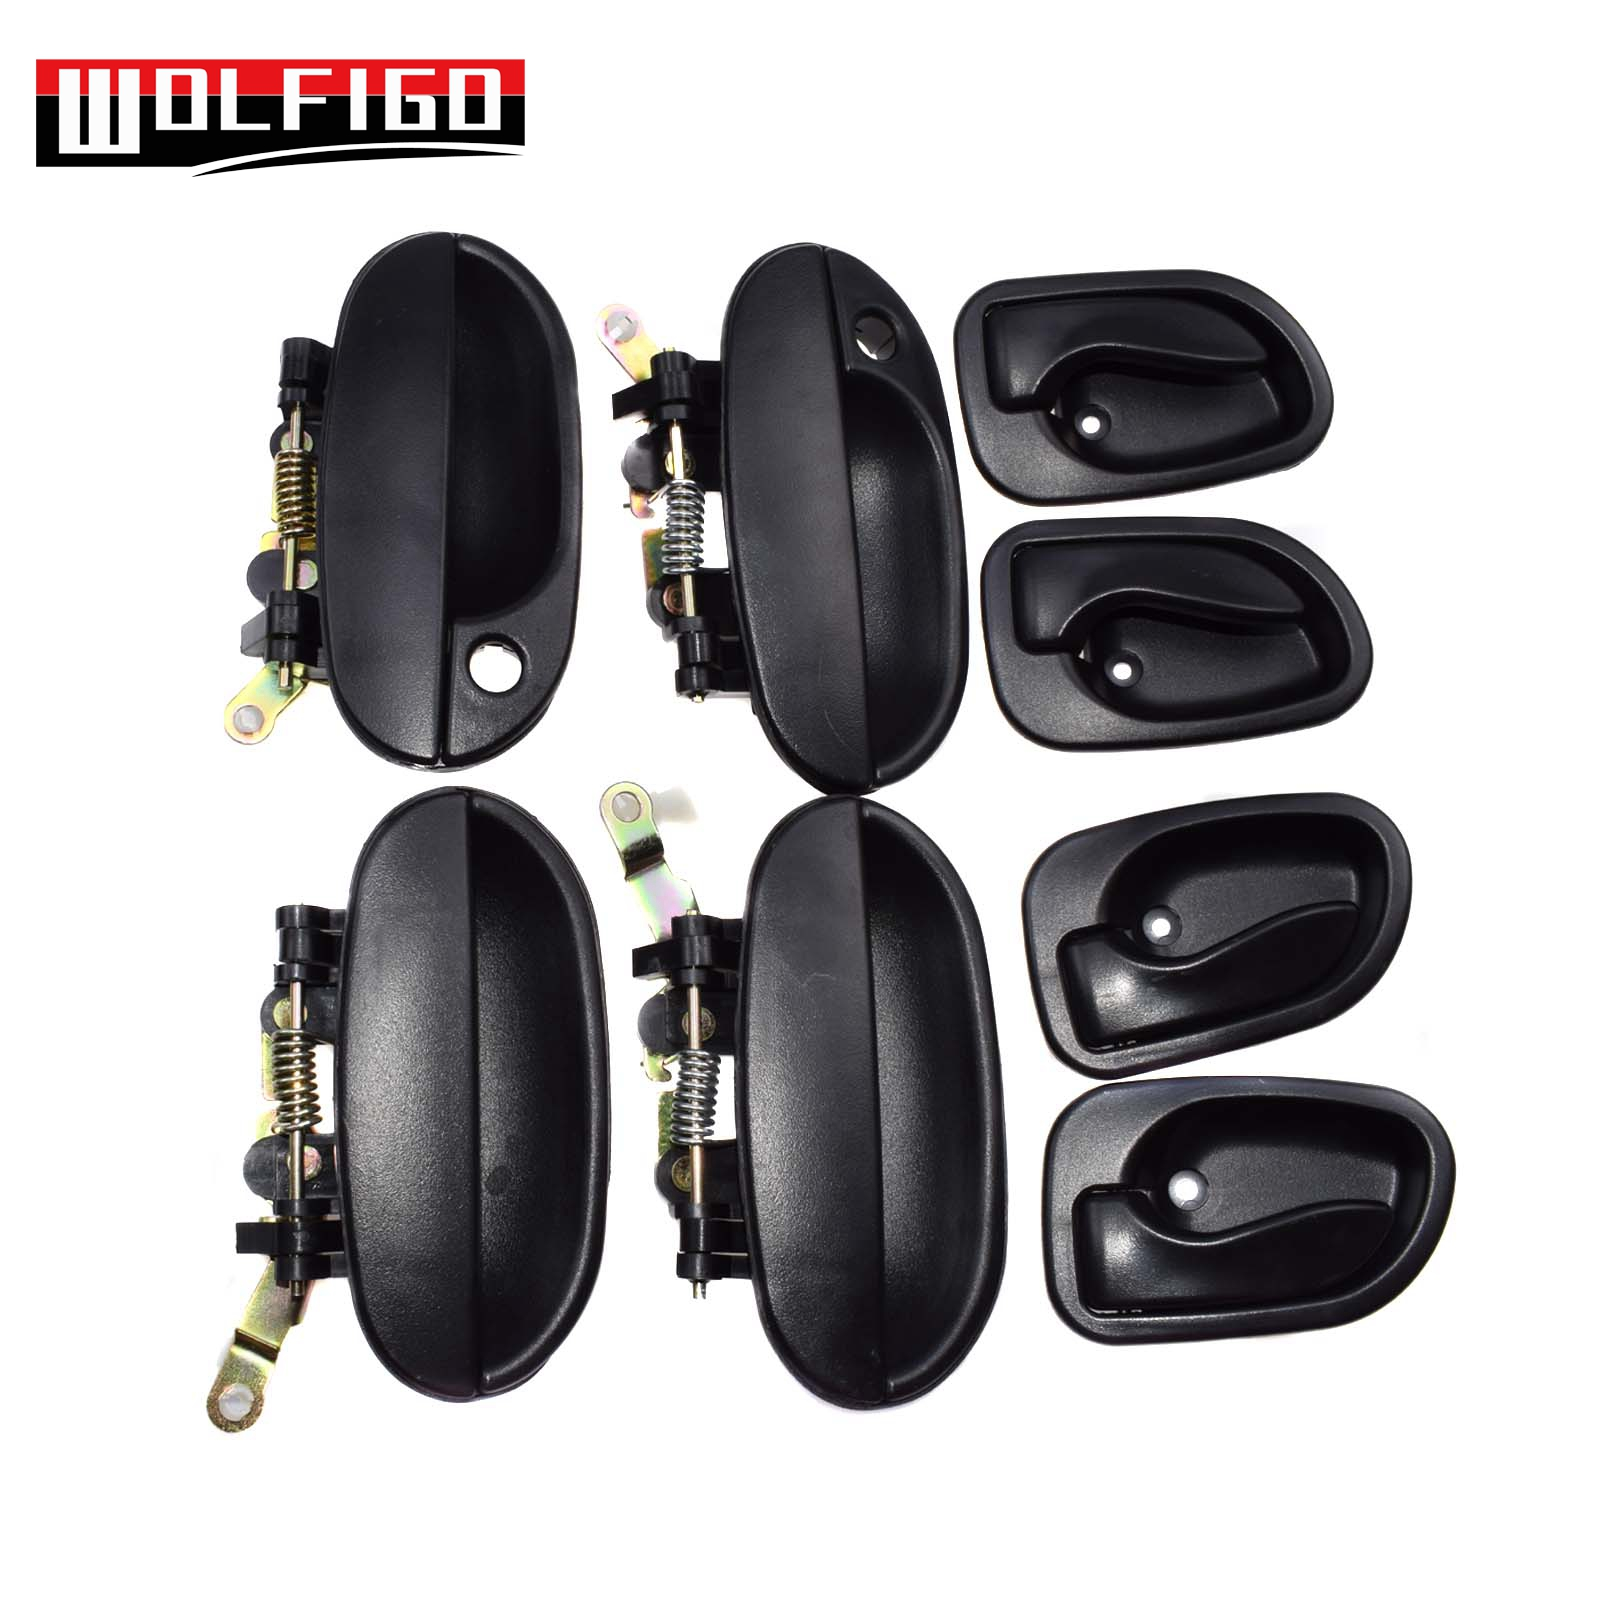 New Outside Door Handle Front Right 8266022000CA For Hyundai Accent 1995-1999